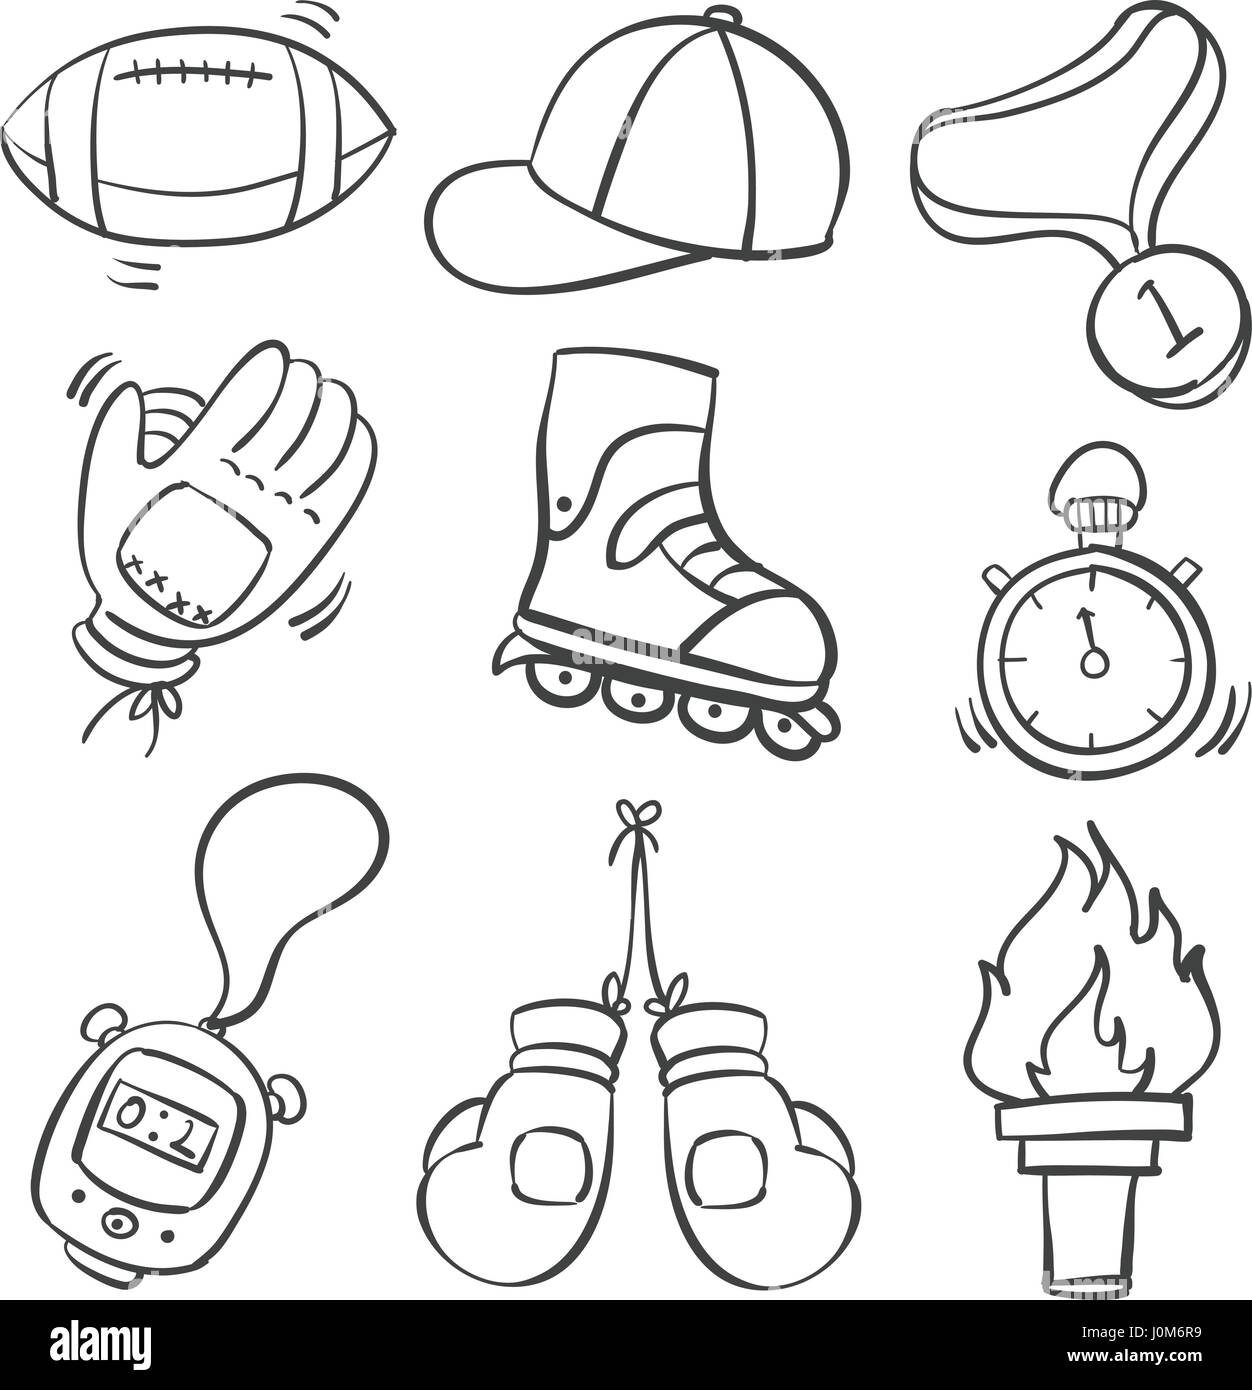 Doodle of sport object various - Stock Image